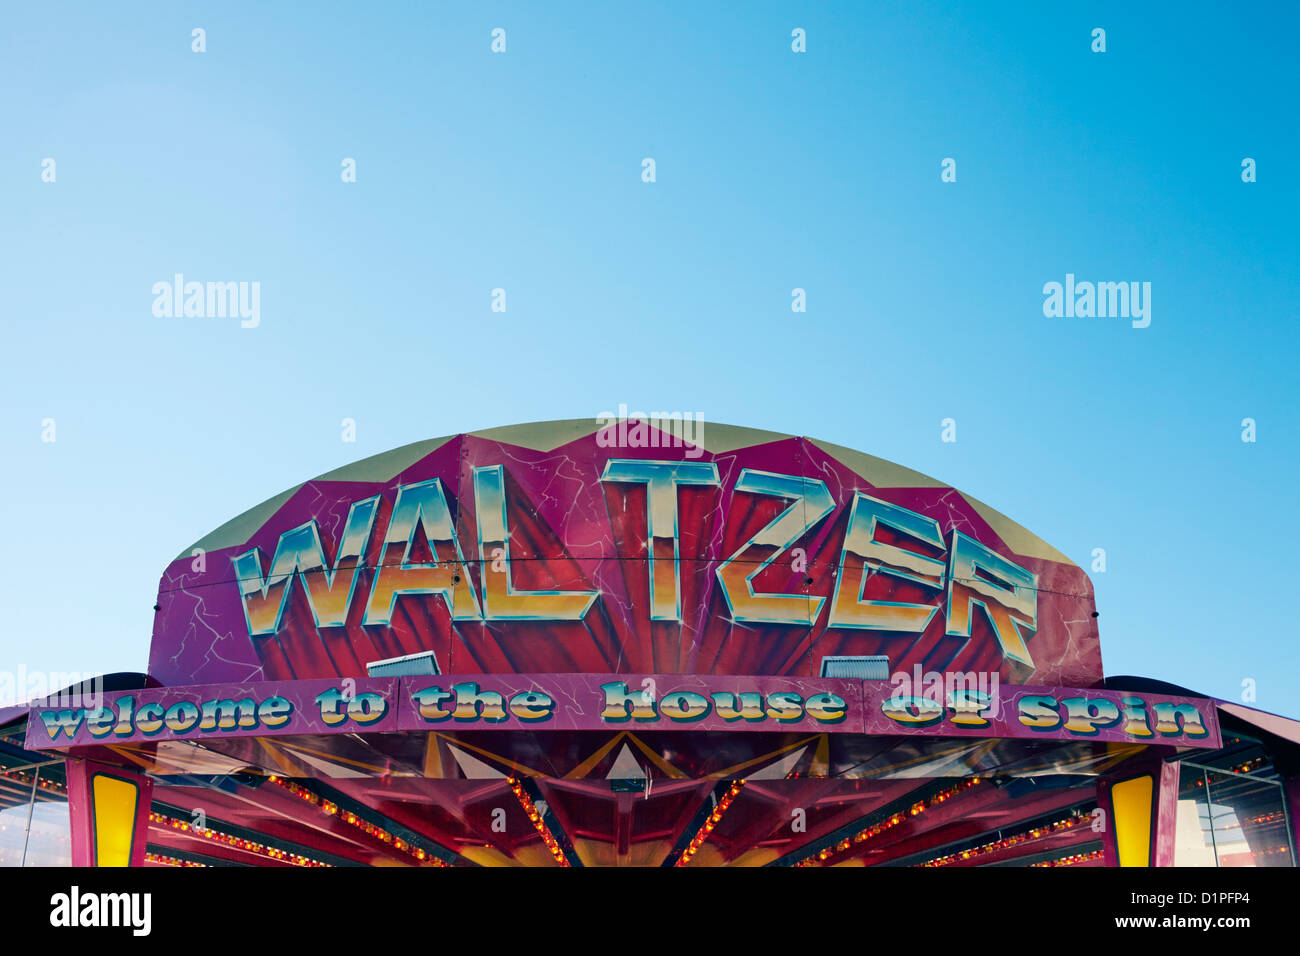 Waltzer, welcome to the house of spin sign - Stock Image